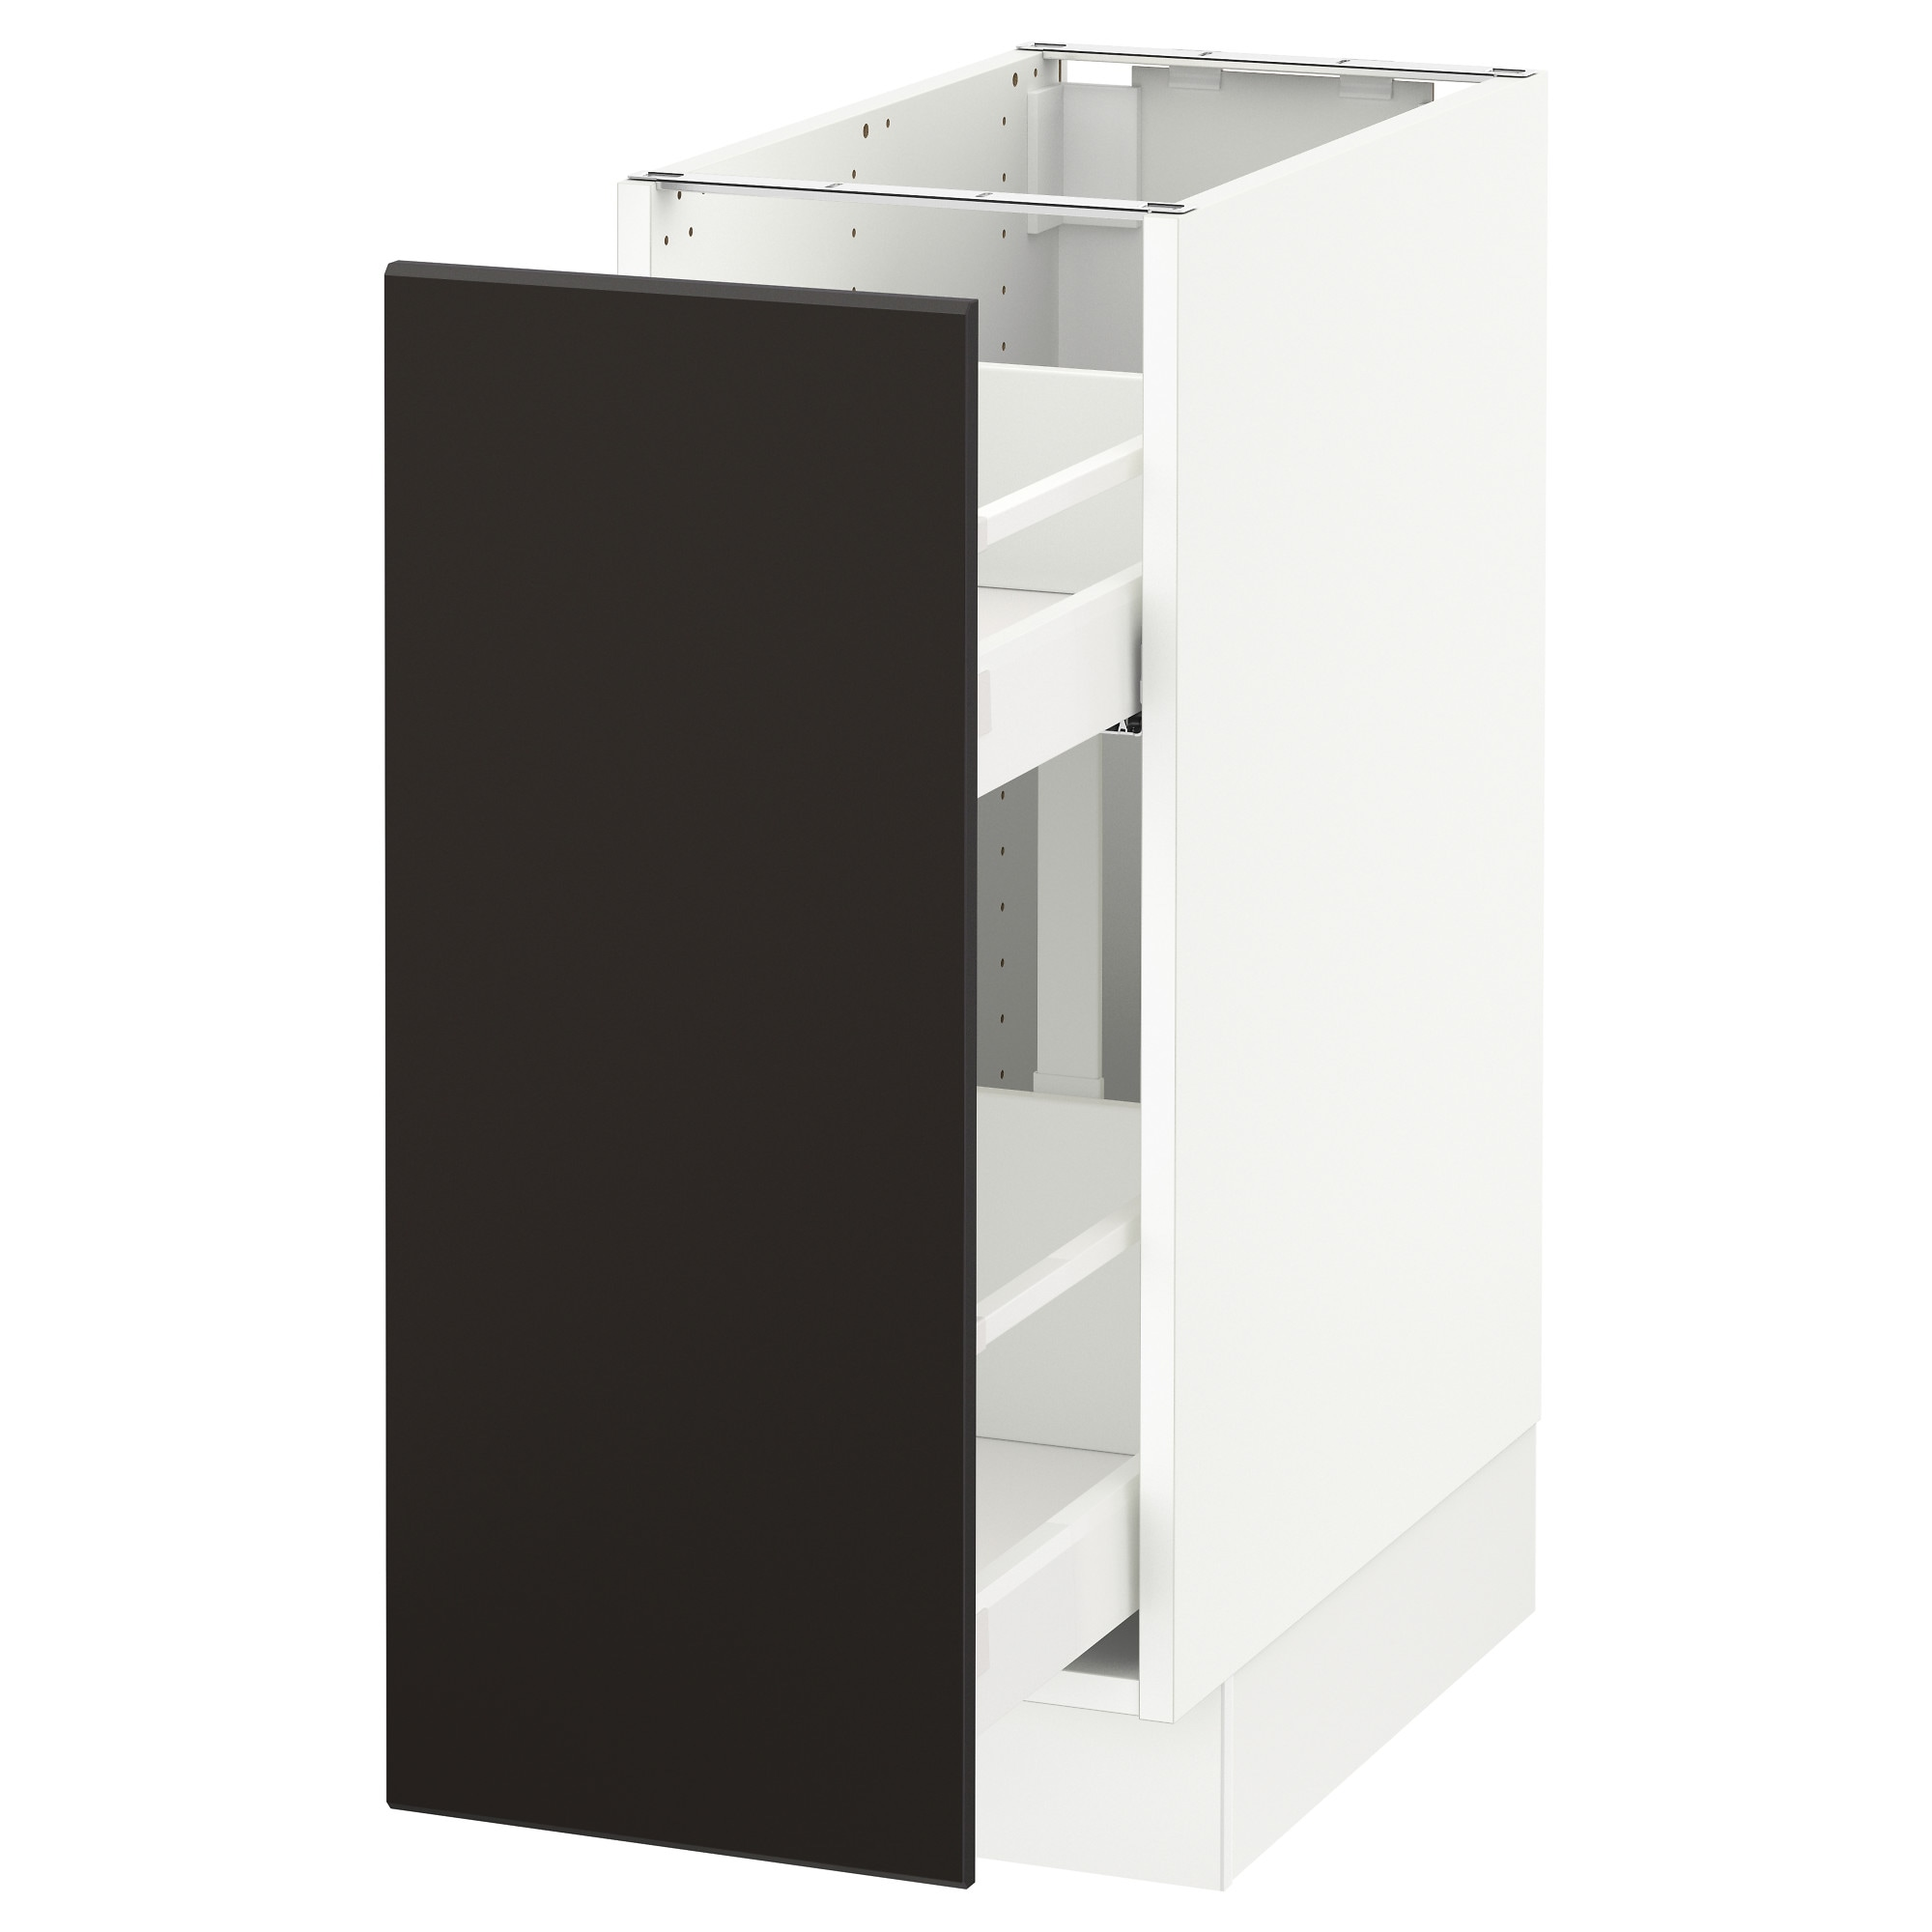 Narrow depth kitchen base cabinets - Sektion Base Cabinet W Pull Out Organizers White Kungsbacka Anthracite Width